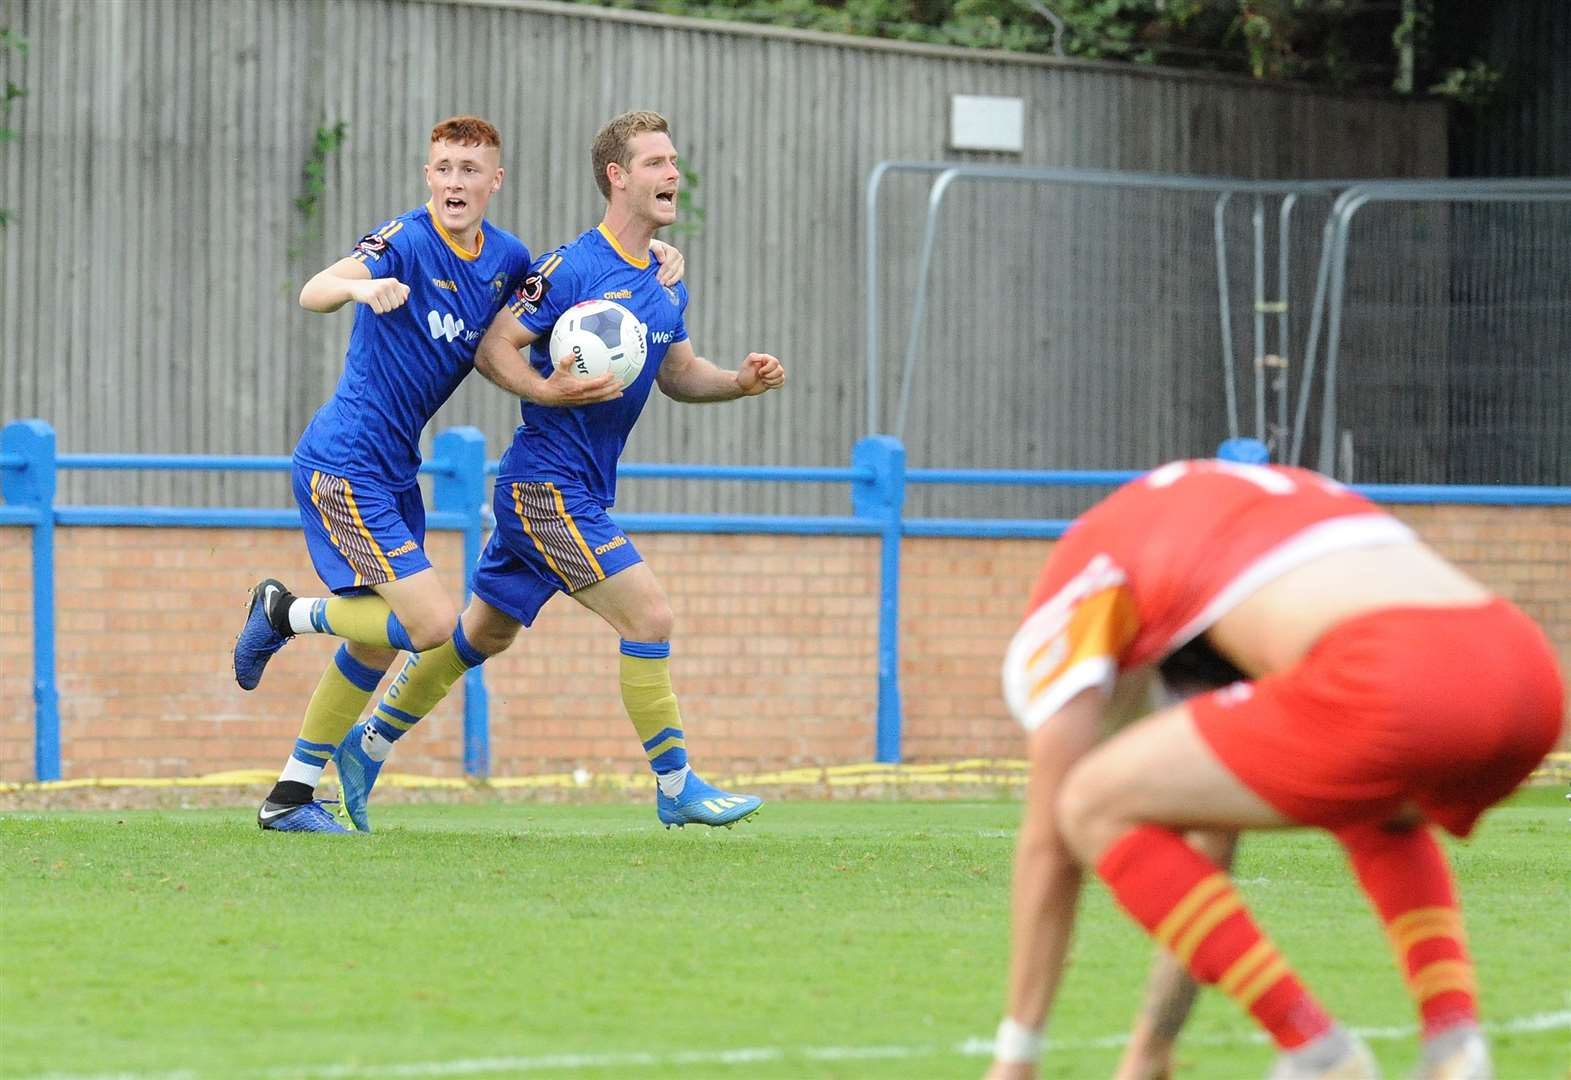 Super Marriott spares Linnets' blushes with late equaliser